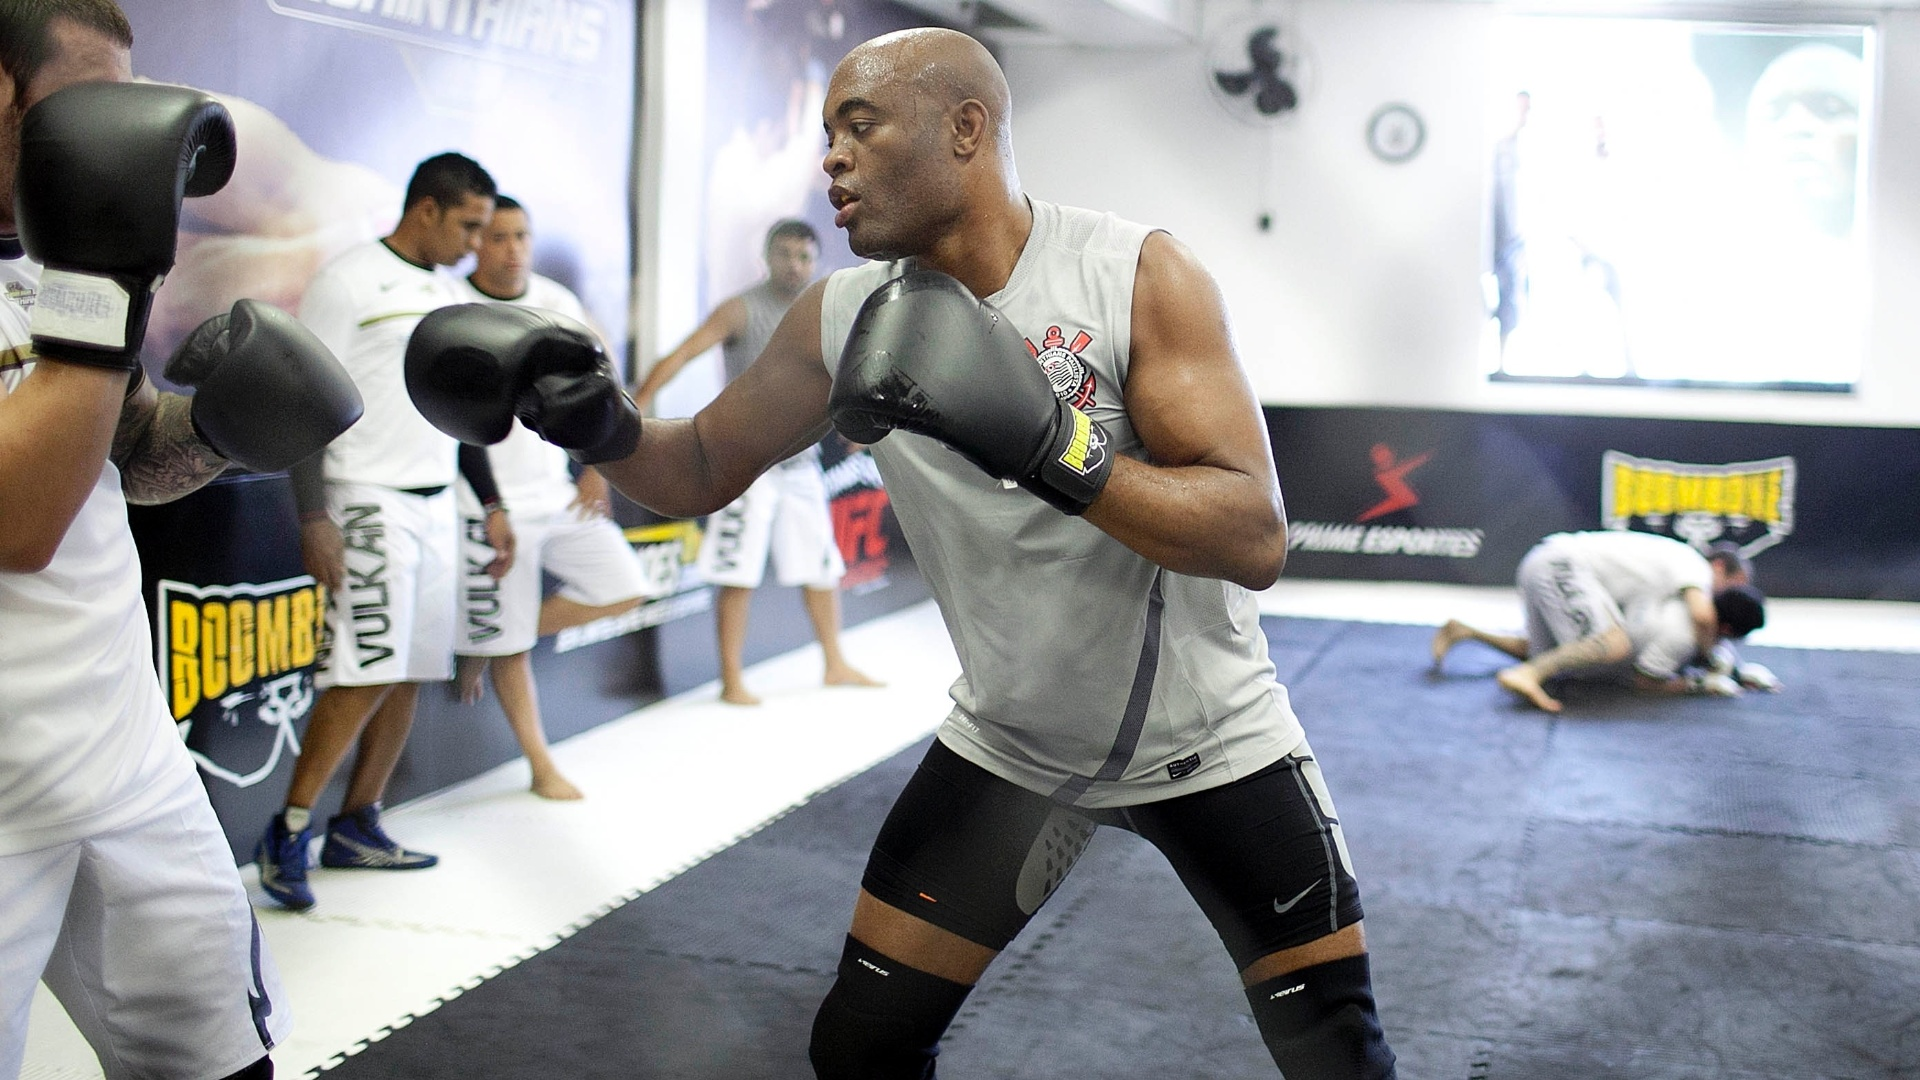 Anderson Silva durante primeiro treino aberto no Parque So Jorge